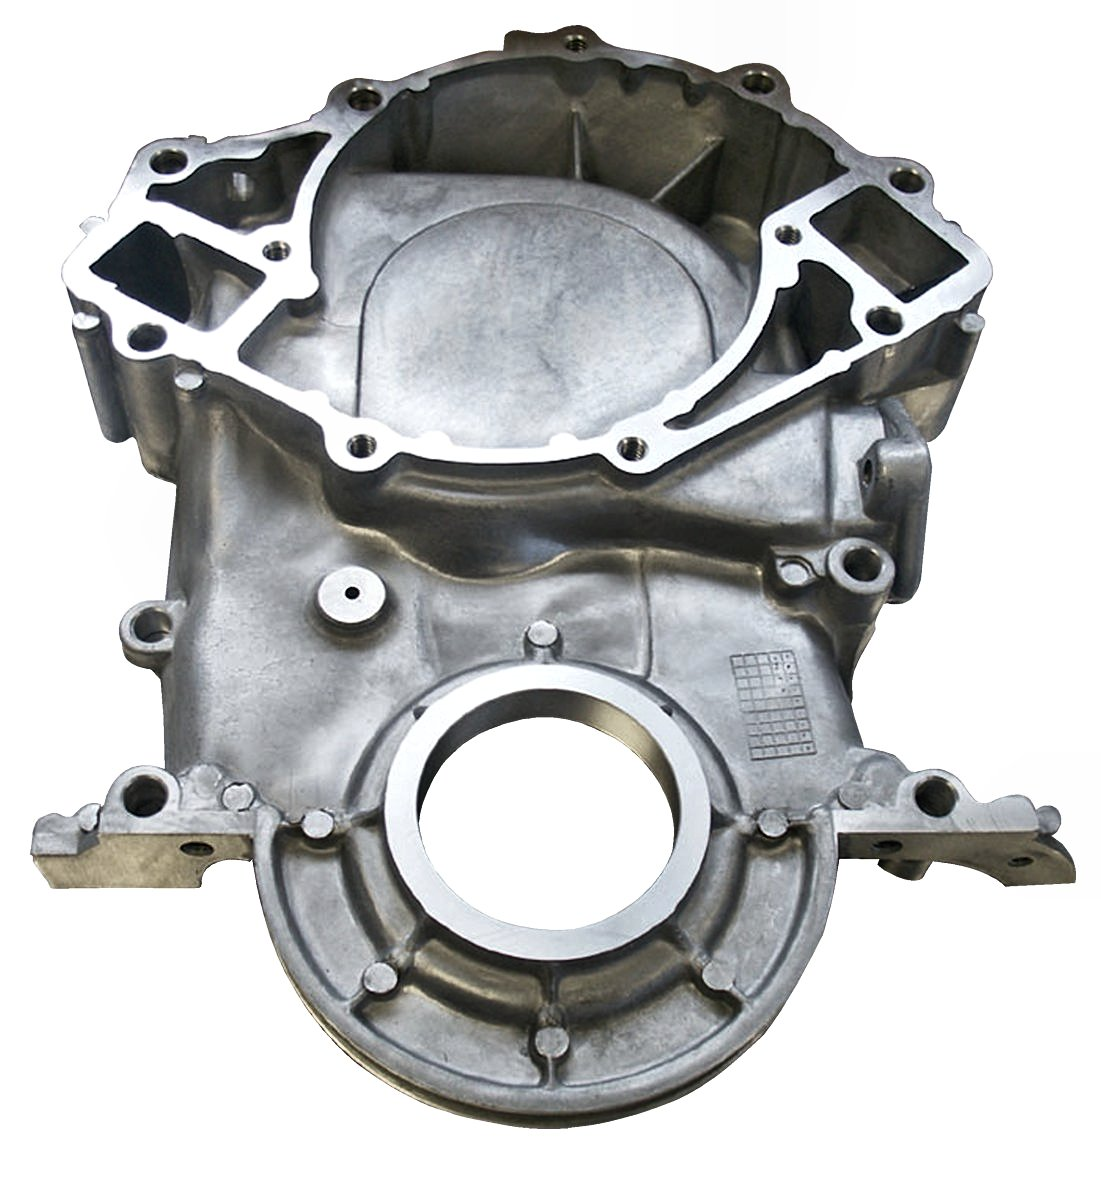 460 7.5L Timing Chain Cover-Broncograveyard.com